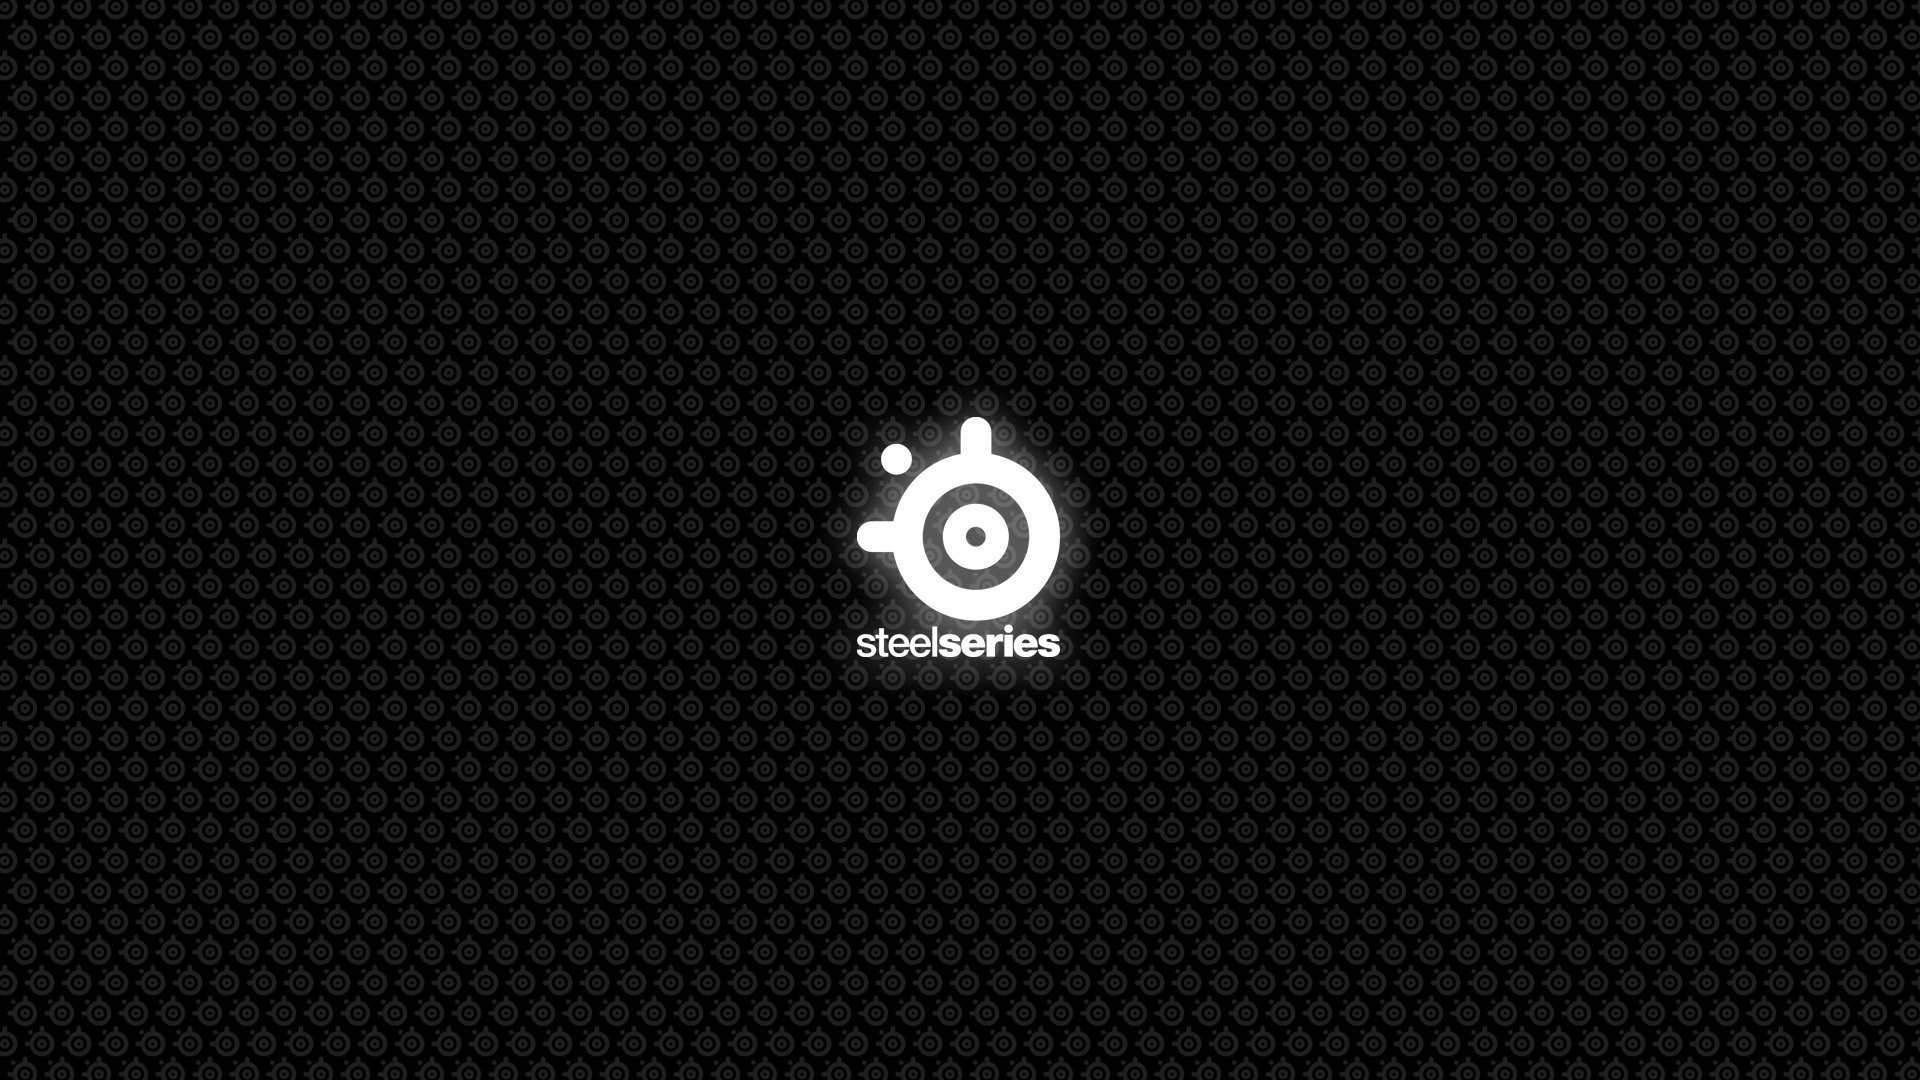 com, steelseries, logo